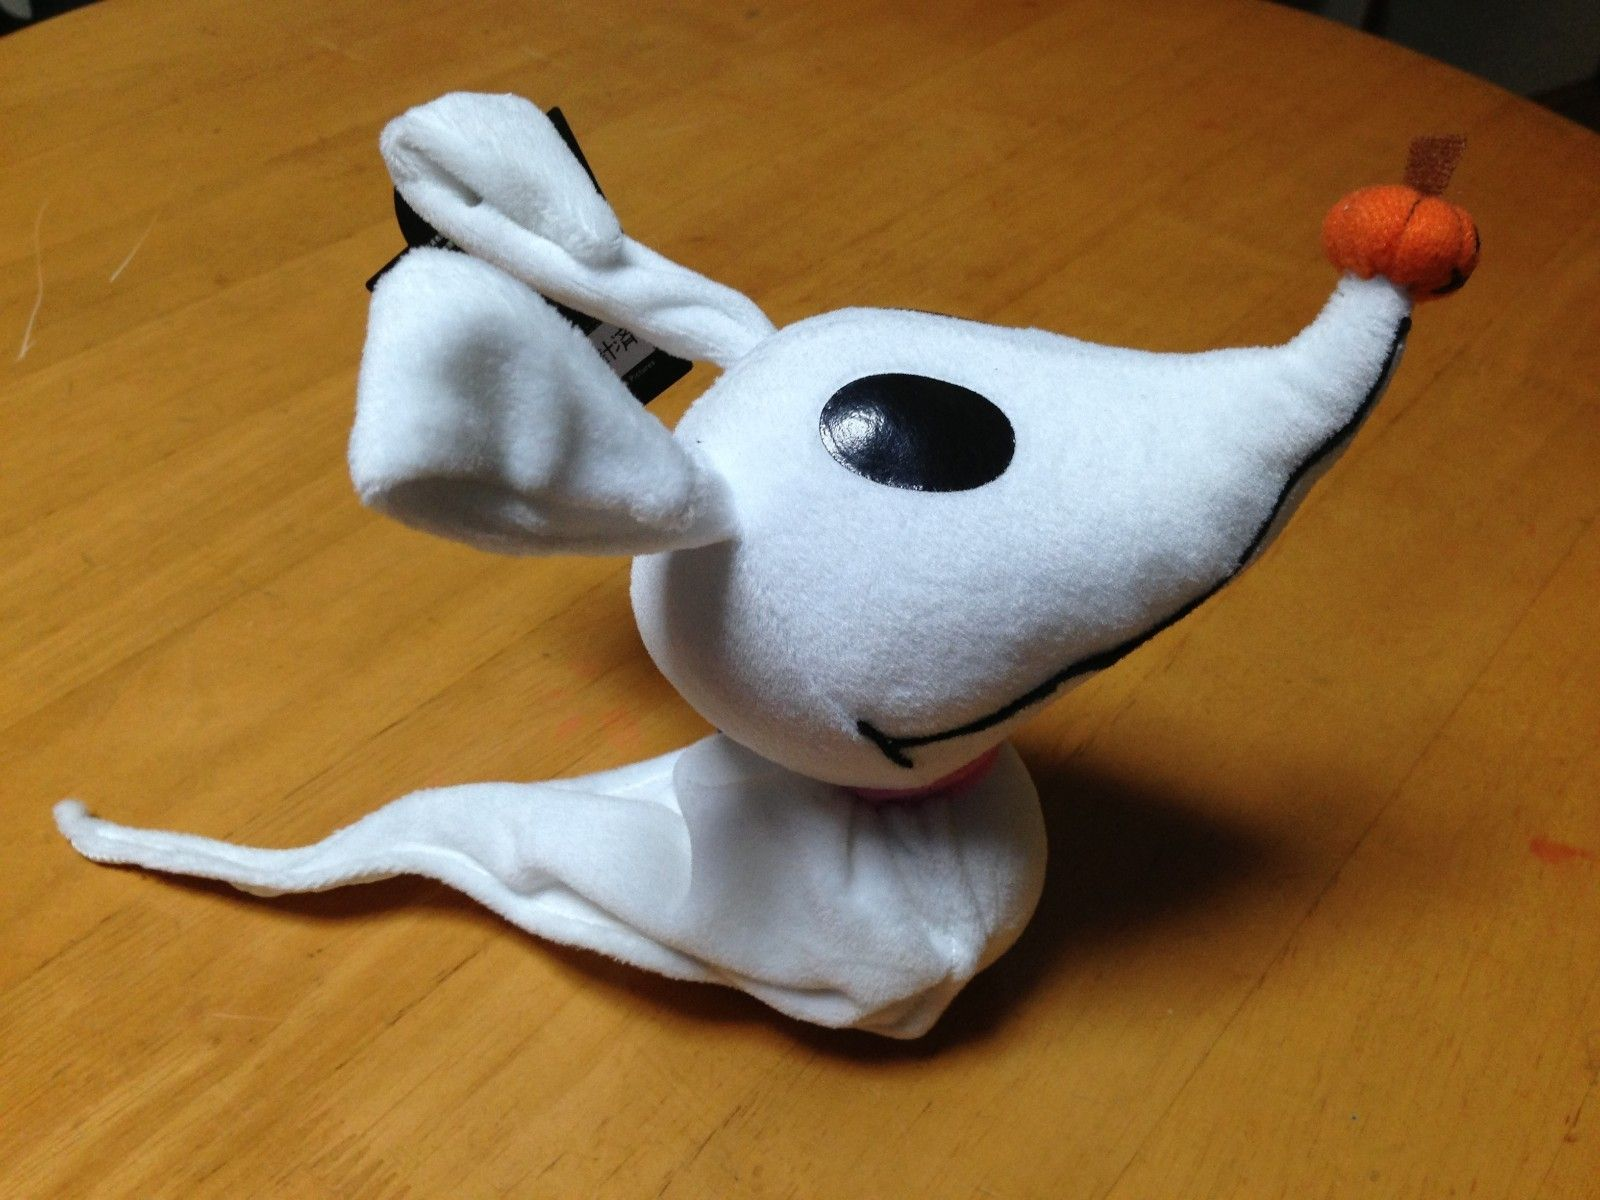 Diy jack skellington s body nightmare before christmas youtube - The Nightmare Before Christmas Zero Dog Plush Doll Bendable Ebay